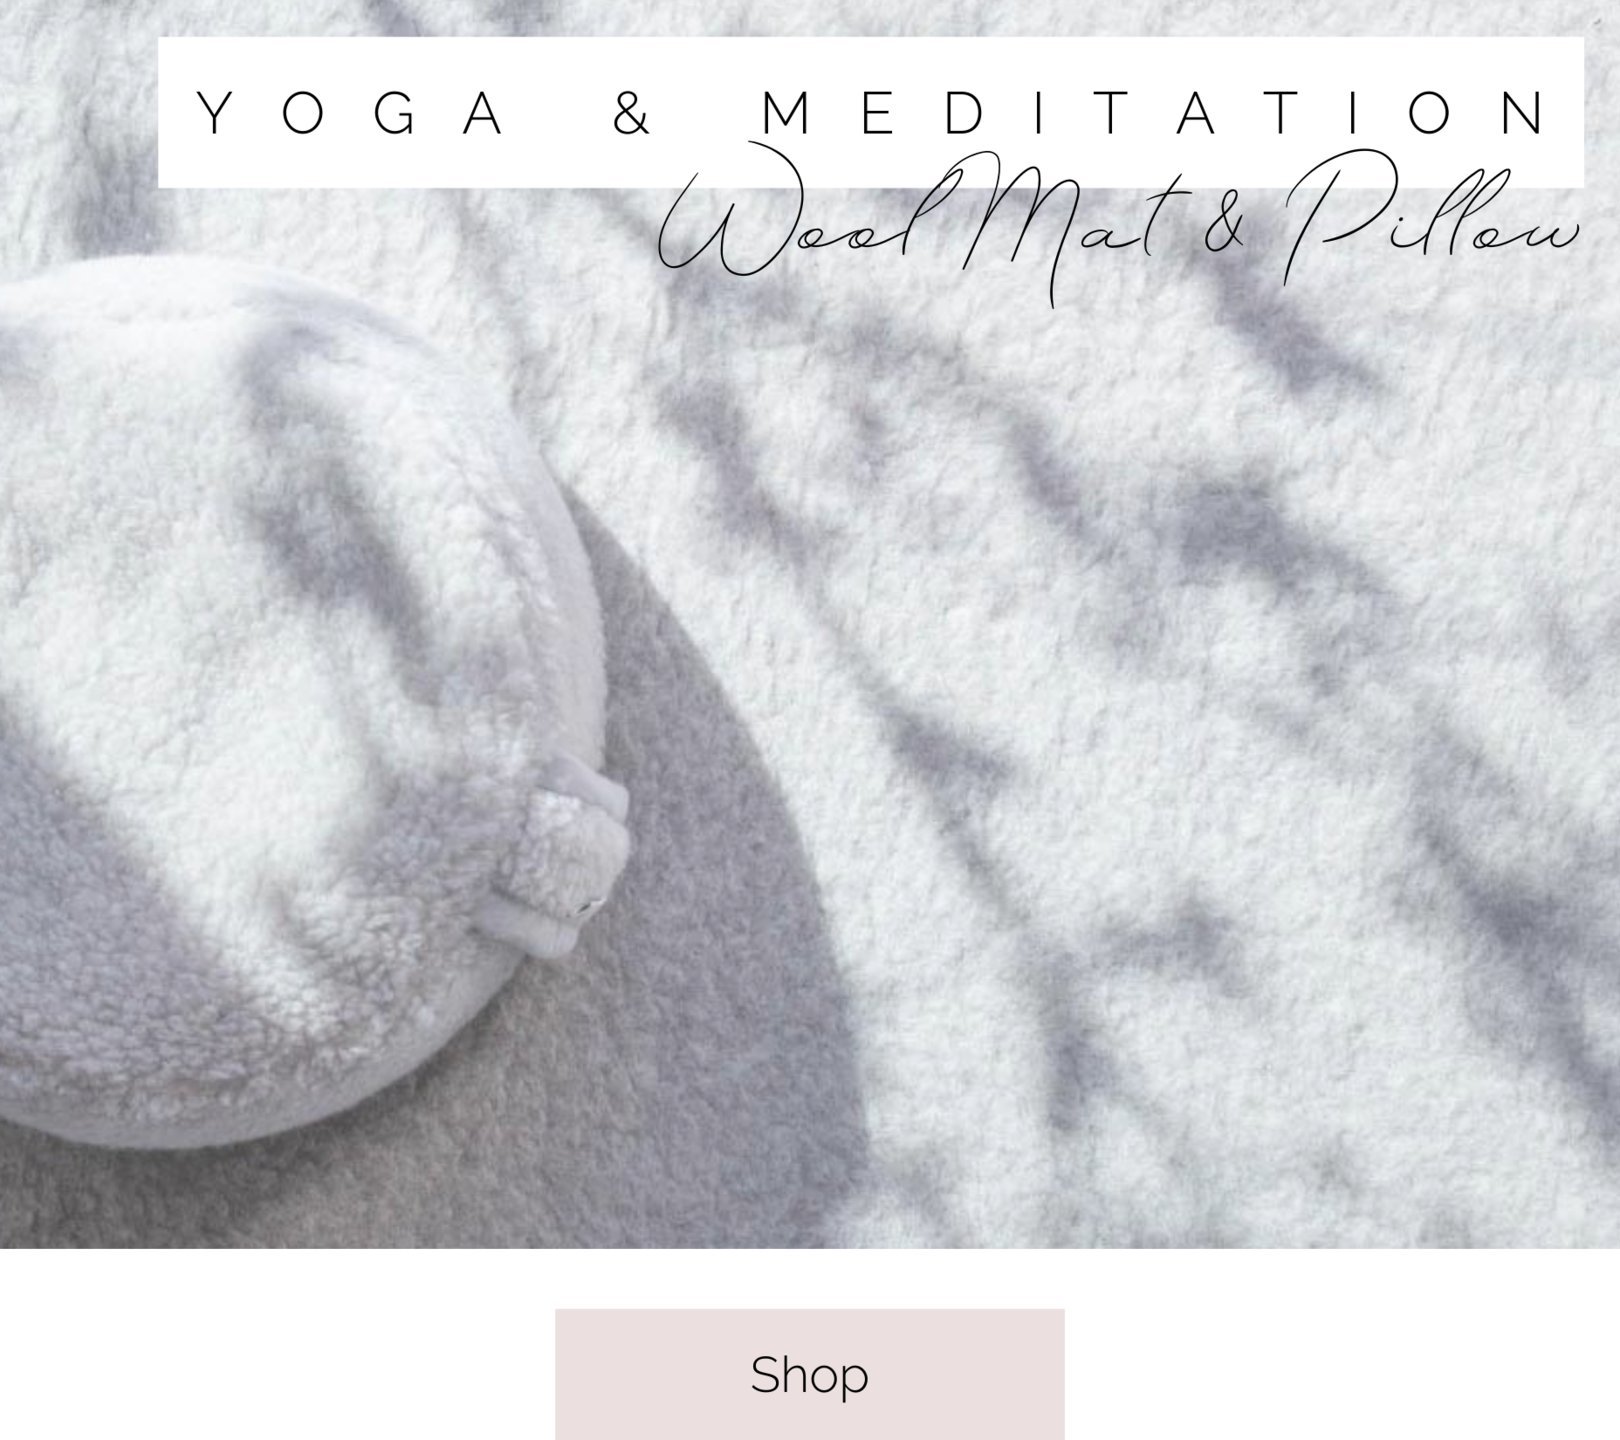 shop yoga mats and meditation pillows